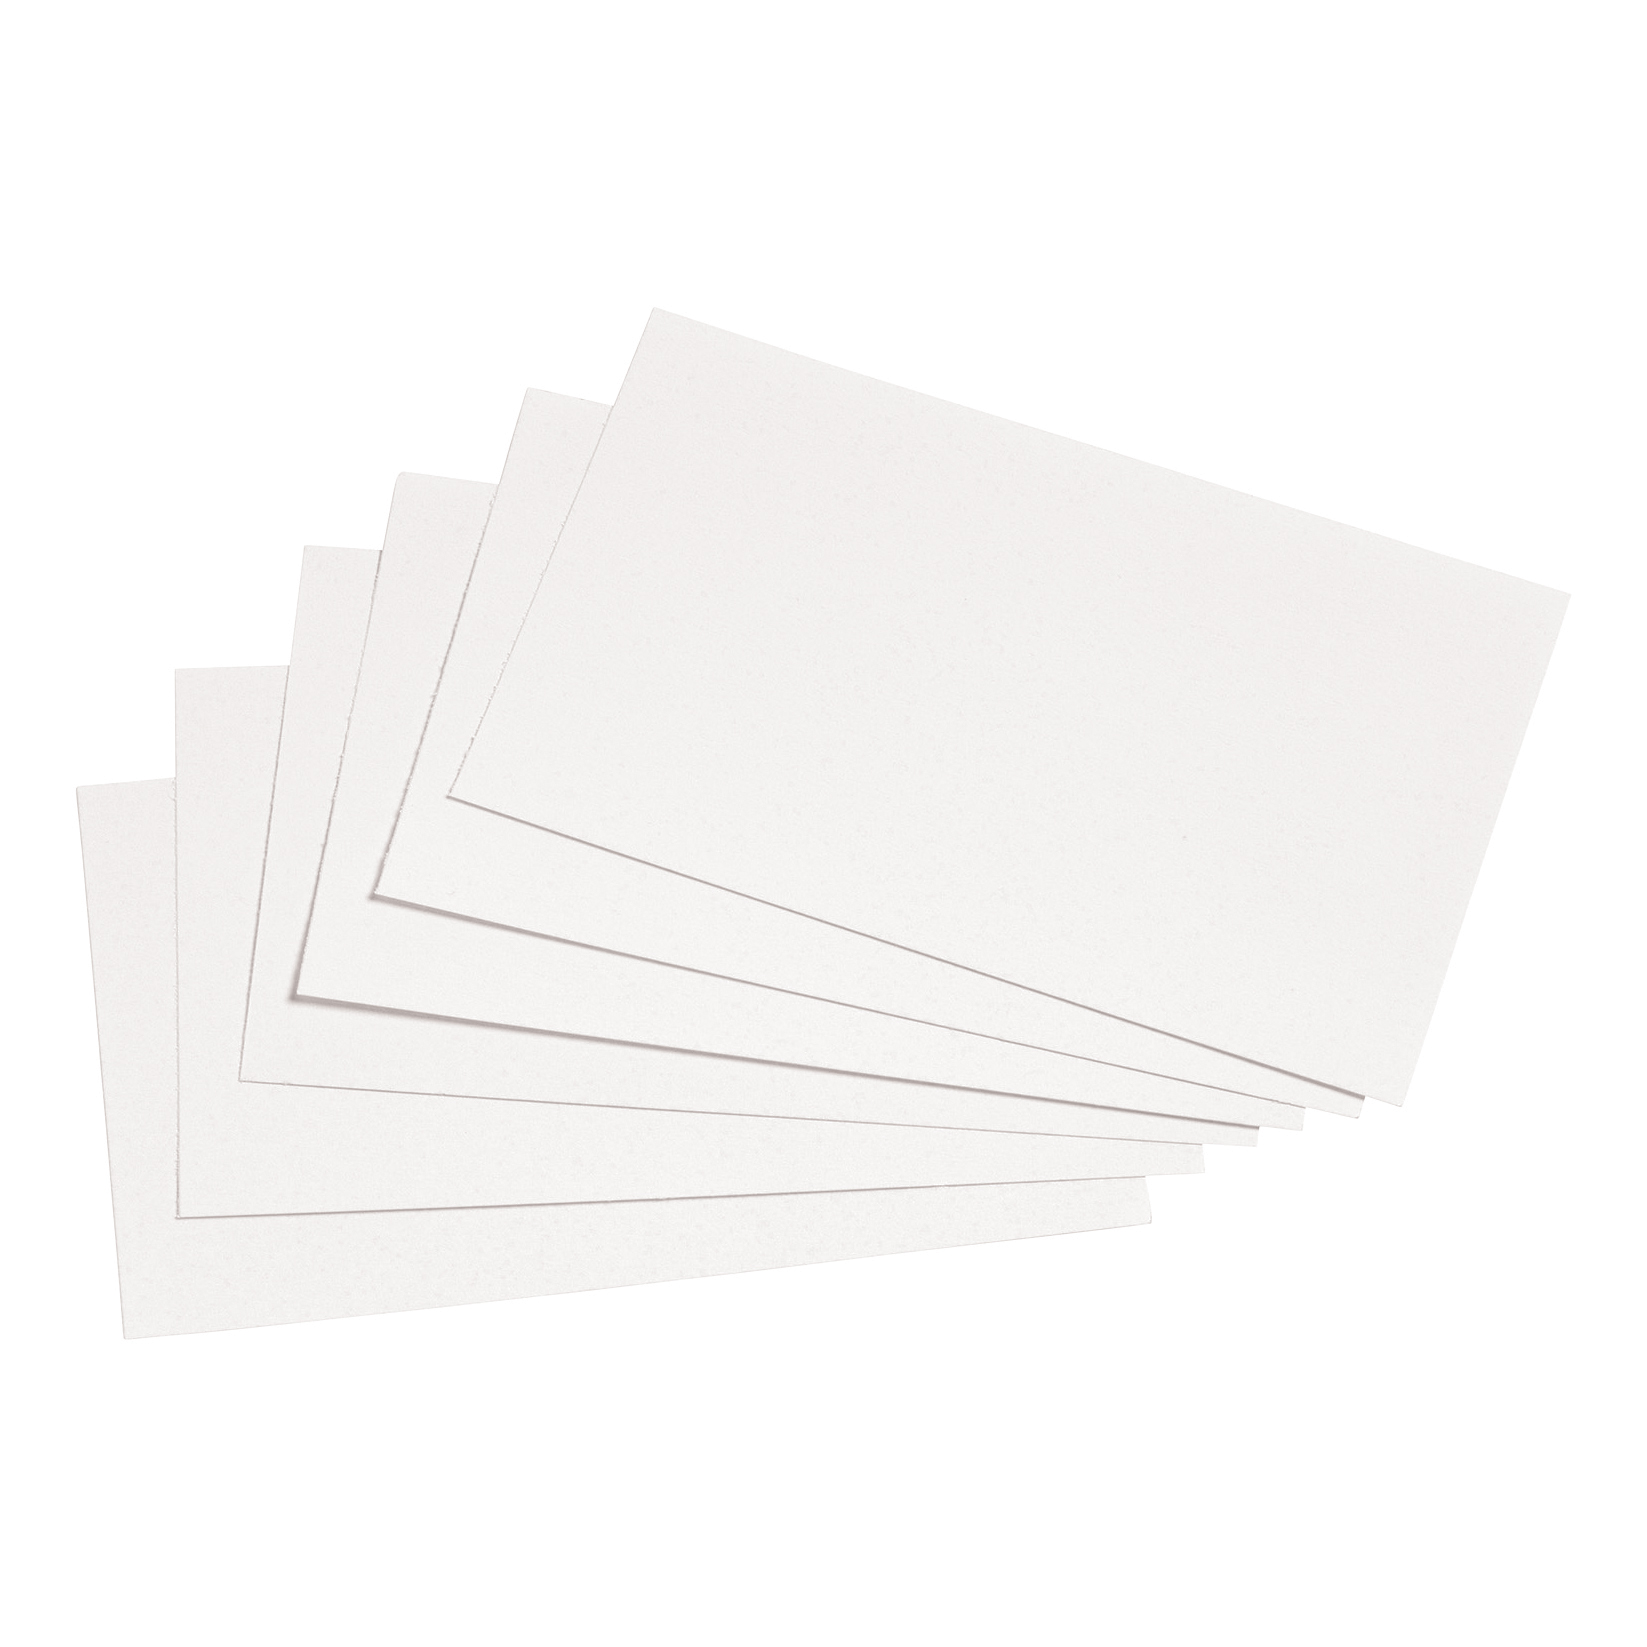 Image for 5 Star Office Record Cards Blank 5x3in 127x76mm White [Pack 100]